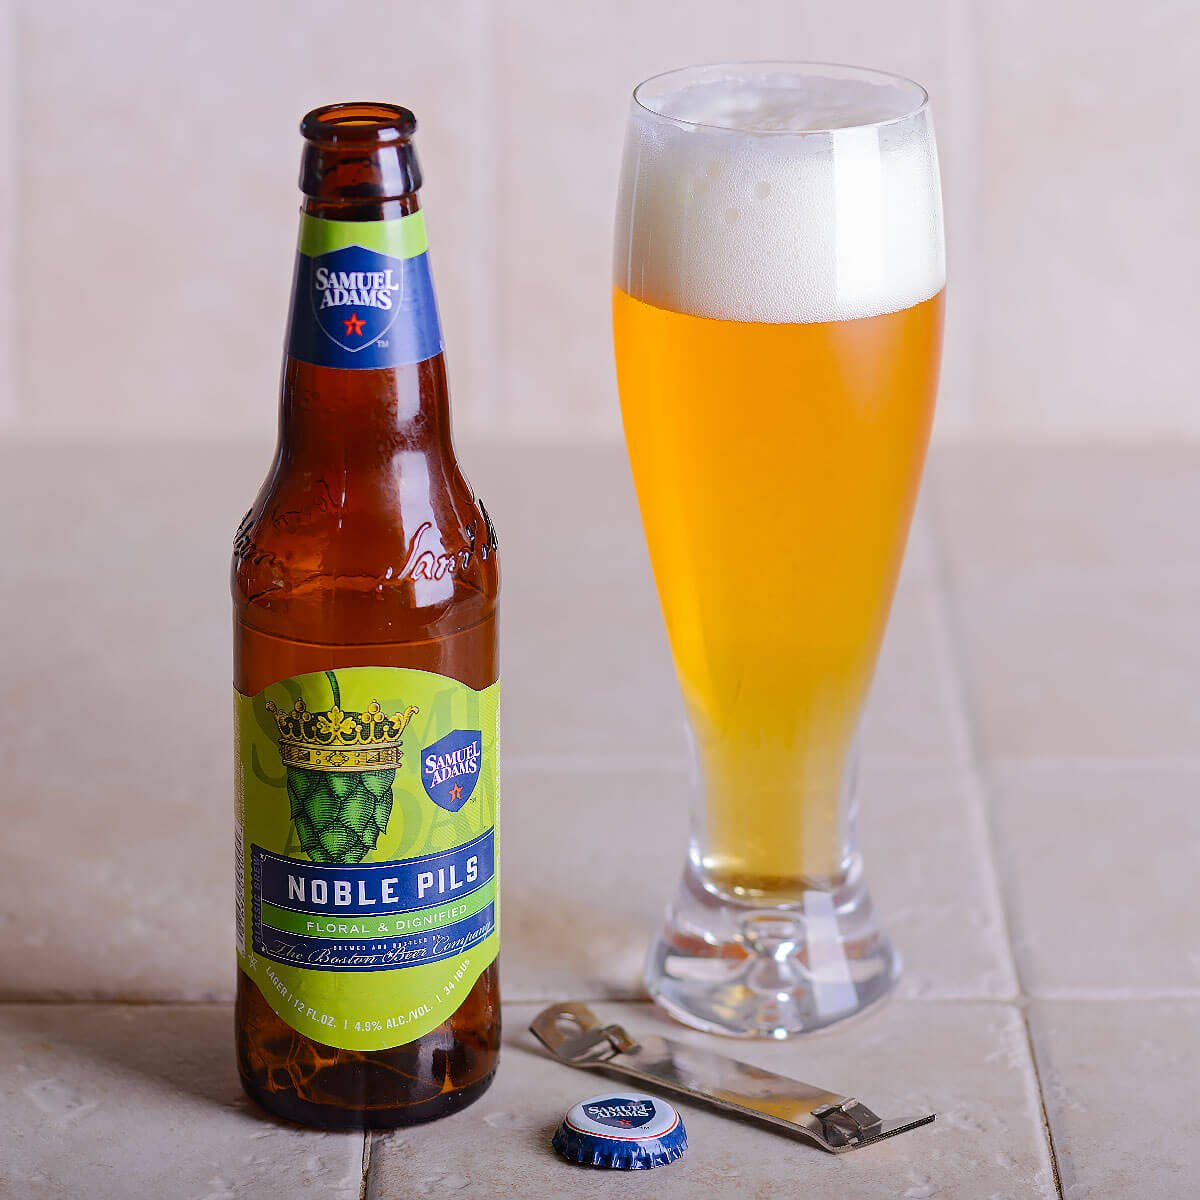 Samuel Adams Noble Pils, a Czech-style Pilsener brewed by the Boston Beer Company